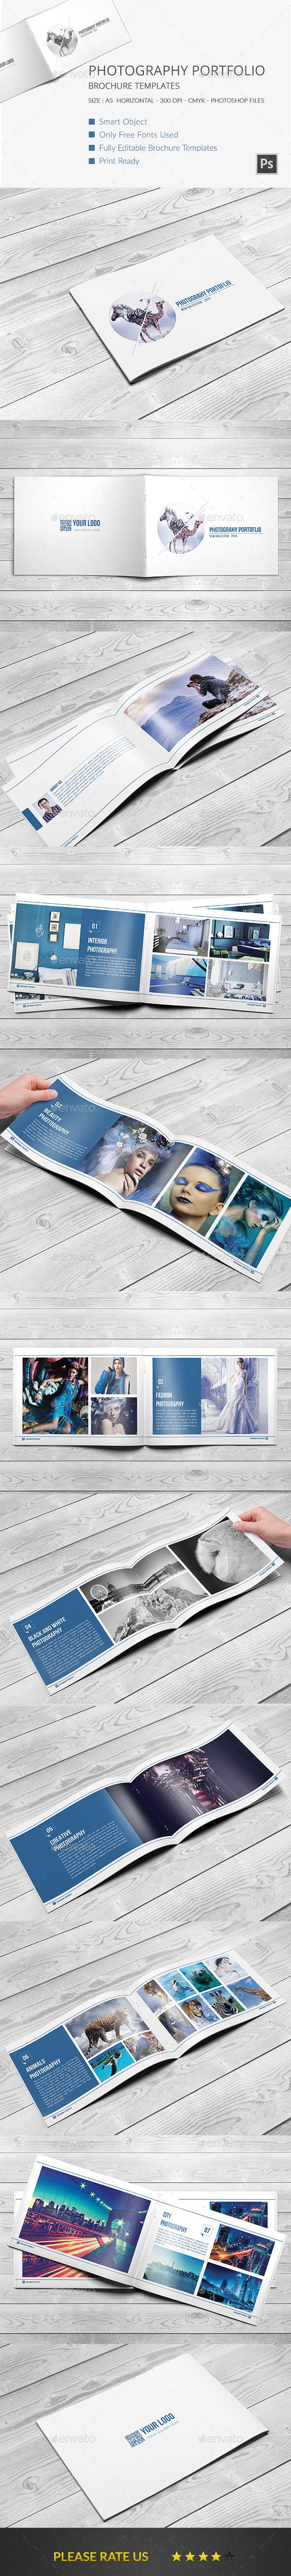 GraphicRiver Photography Portfolio Brochure Template vol 1 11339967